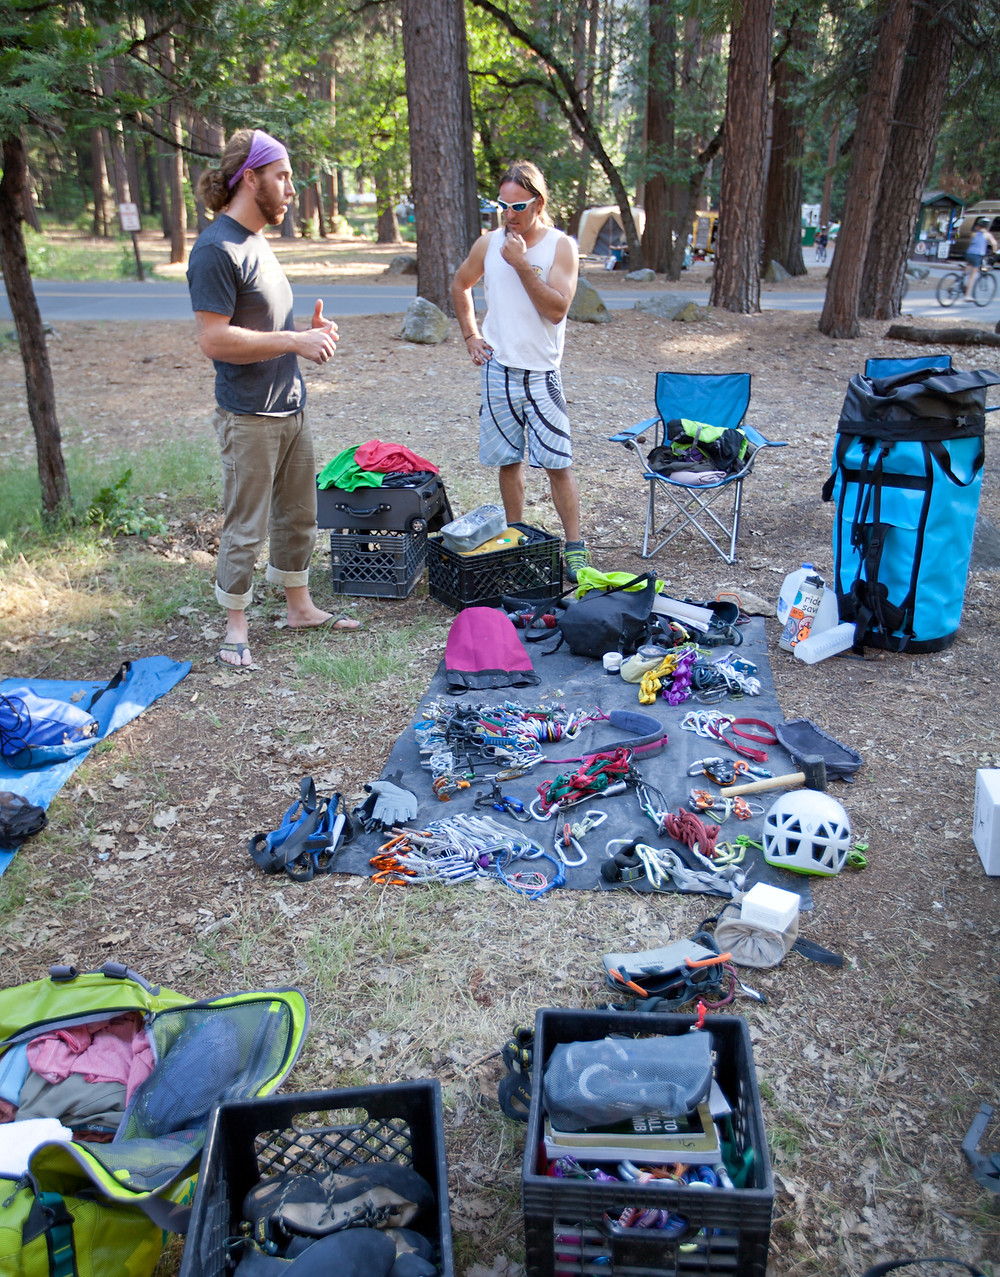 Talking plans and organizing gear at camp.